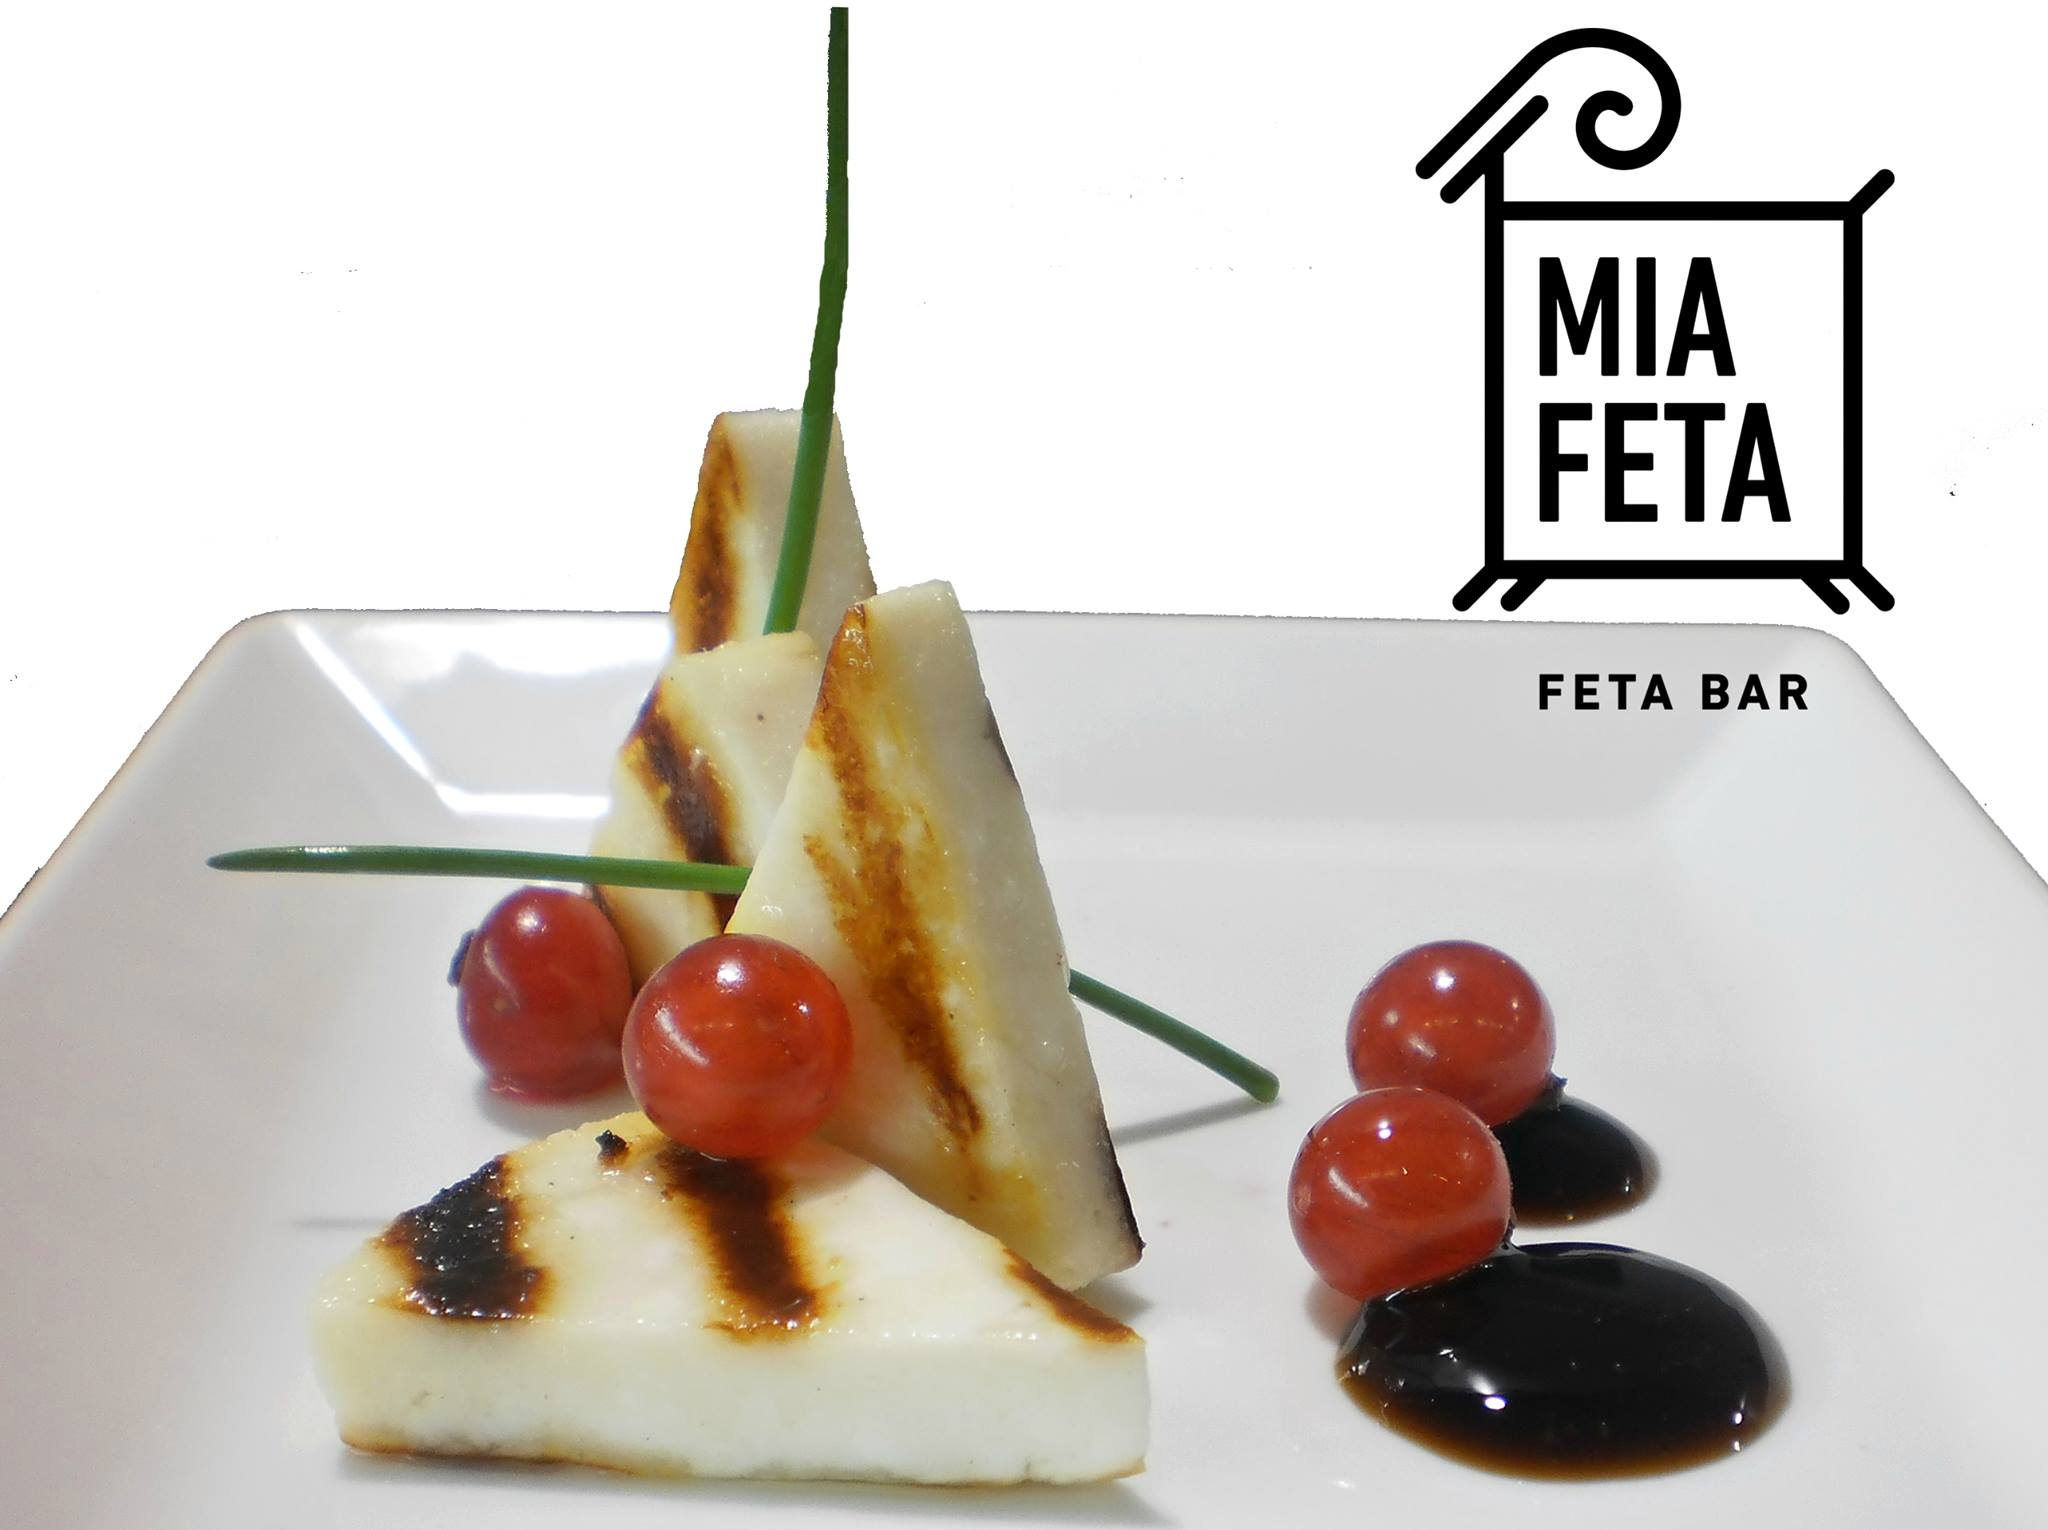 Mia feta - Feta bar artisan daily products Thessaloniki